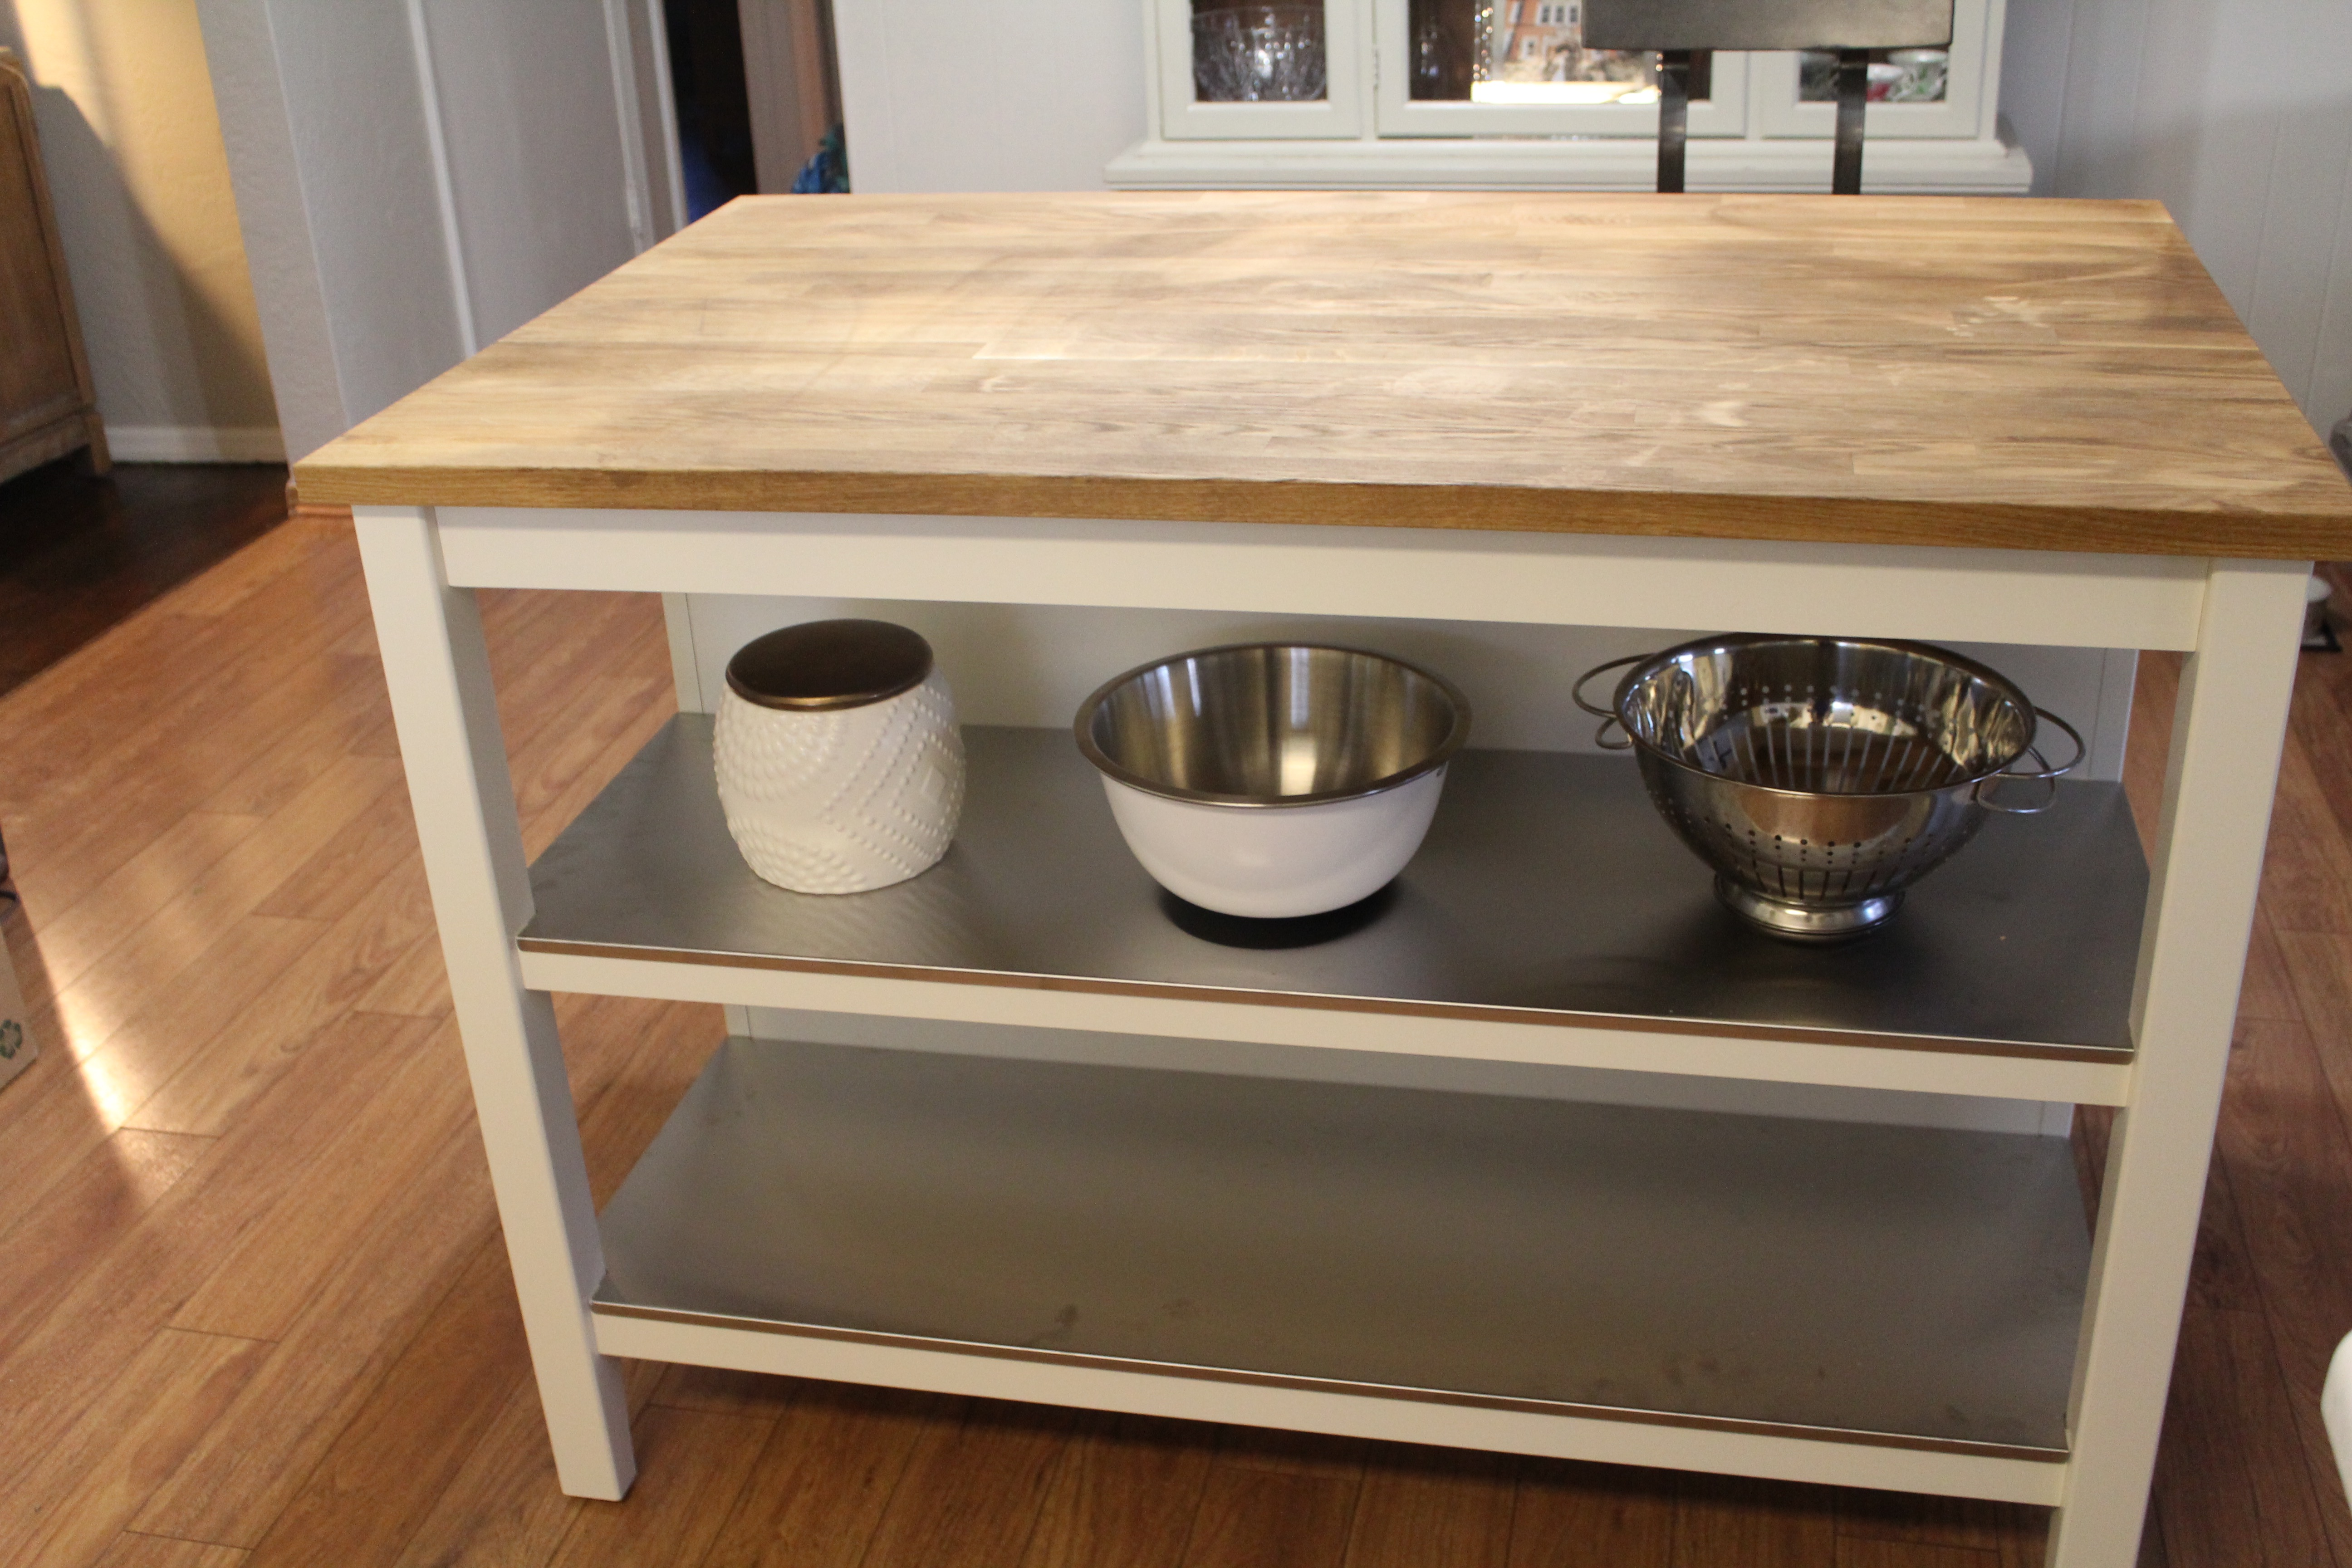 How to Repair a Stained Butcher Block Island